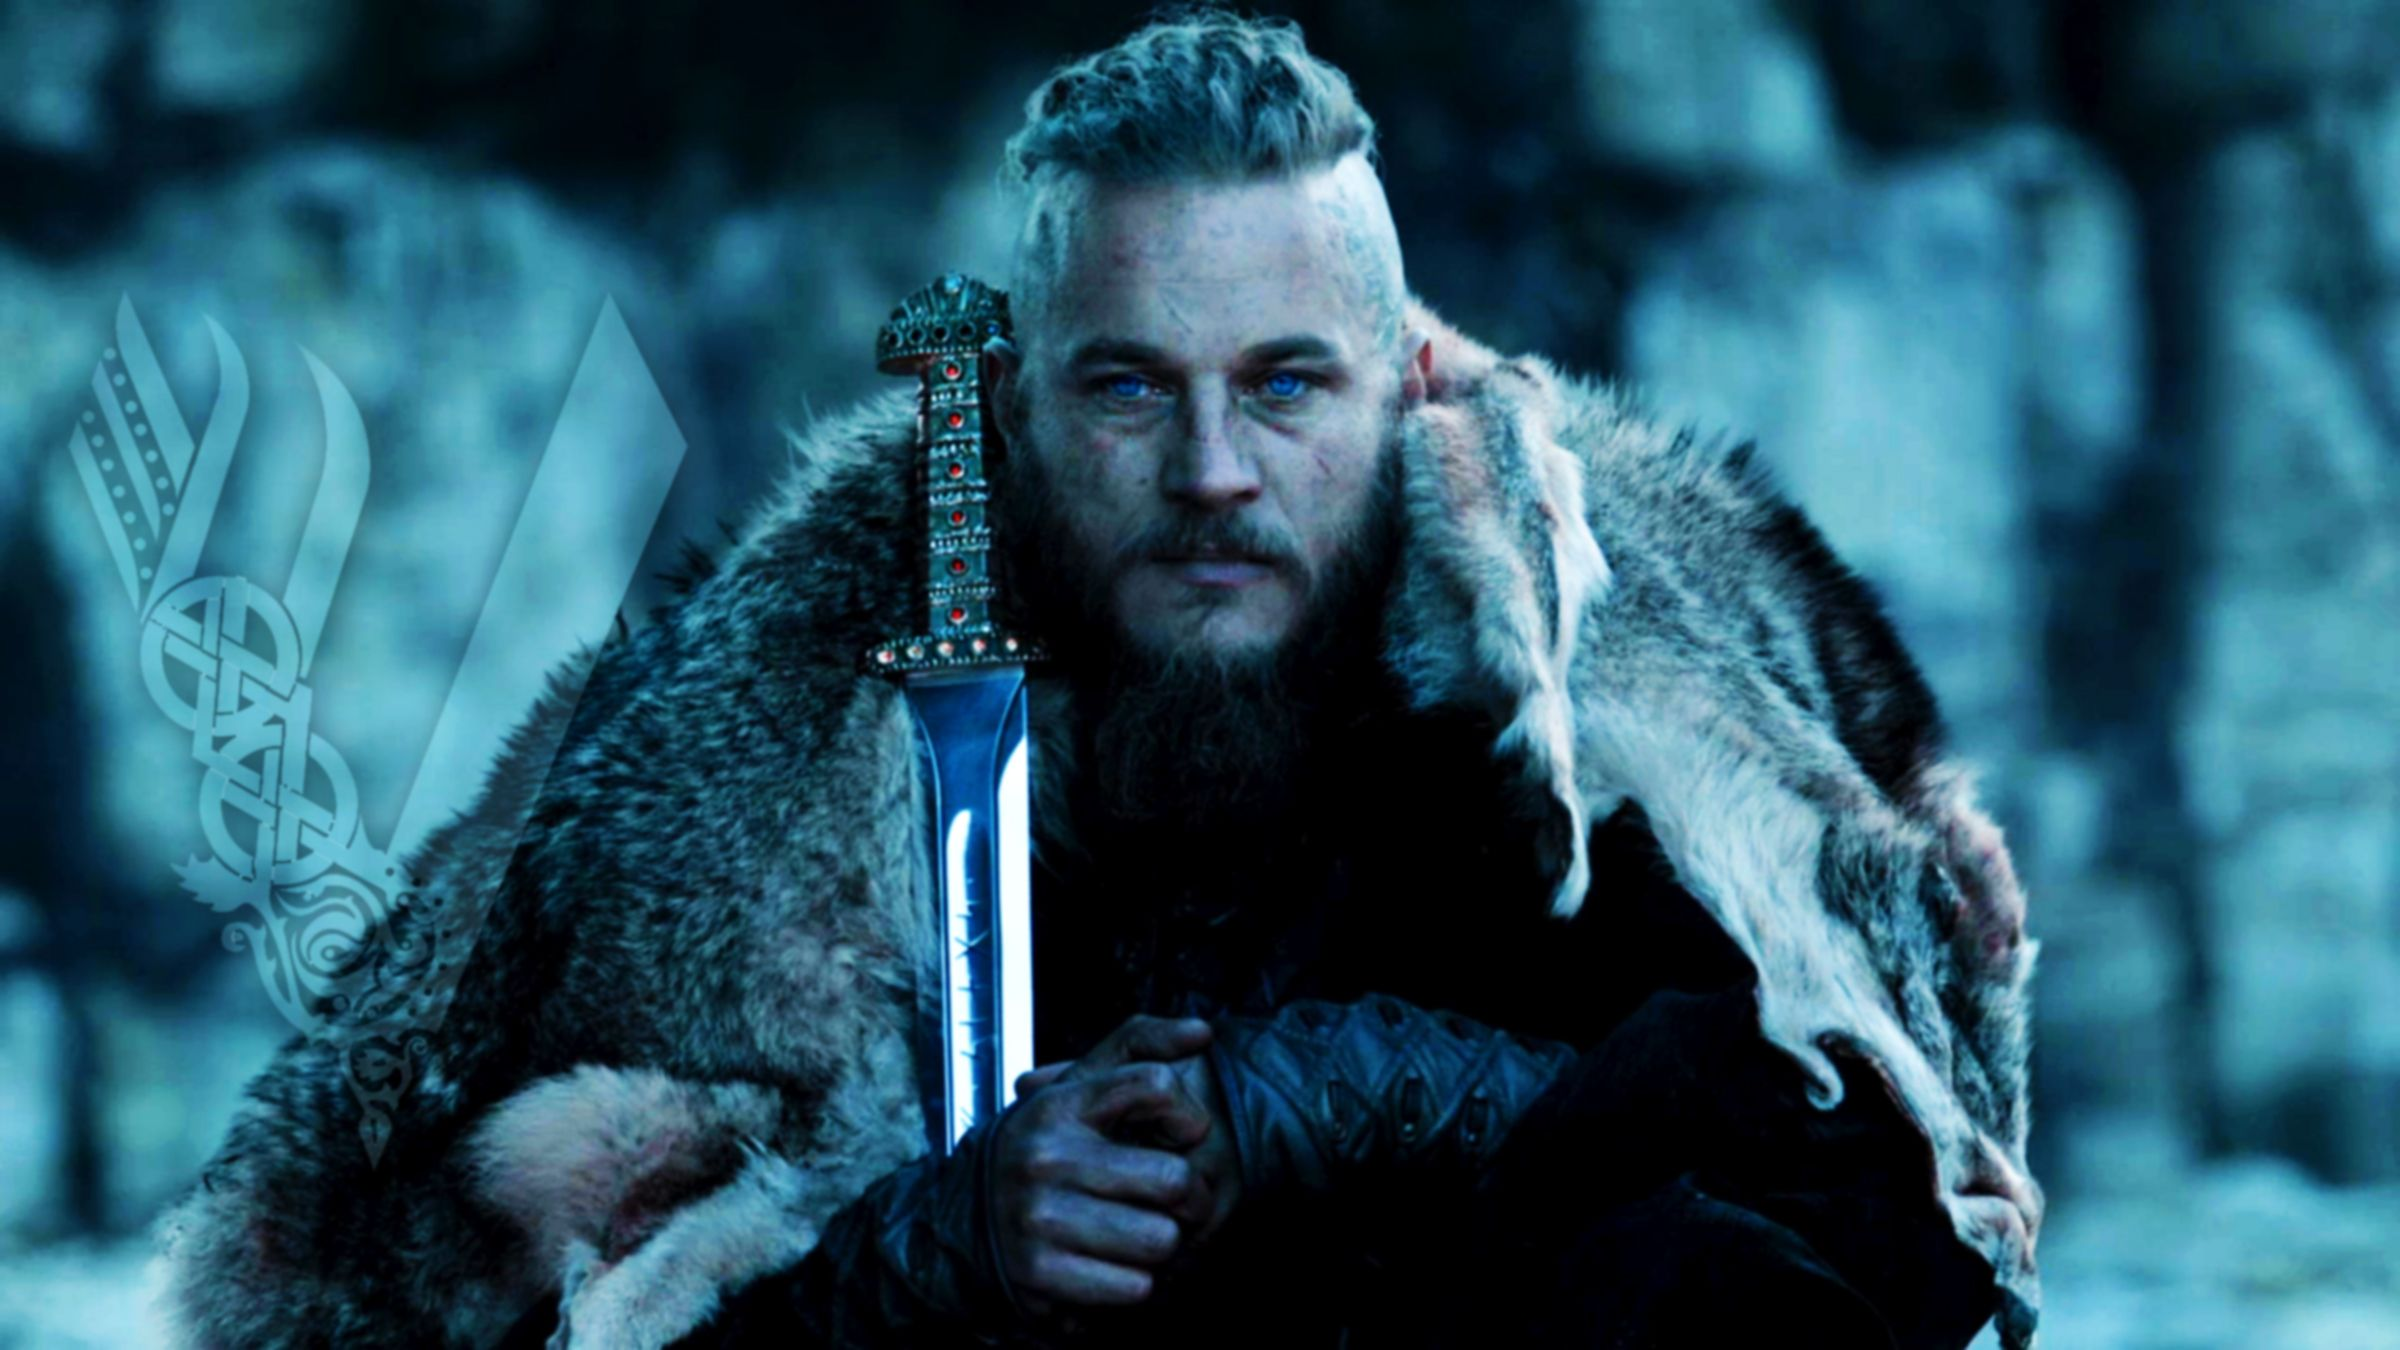 Rag Movie Tv Vikings Season 5 Show Ragnar